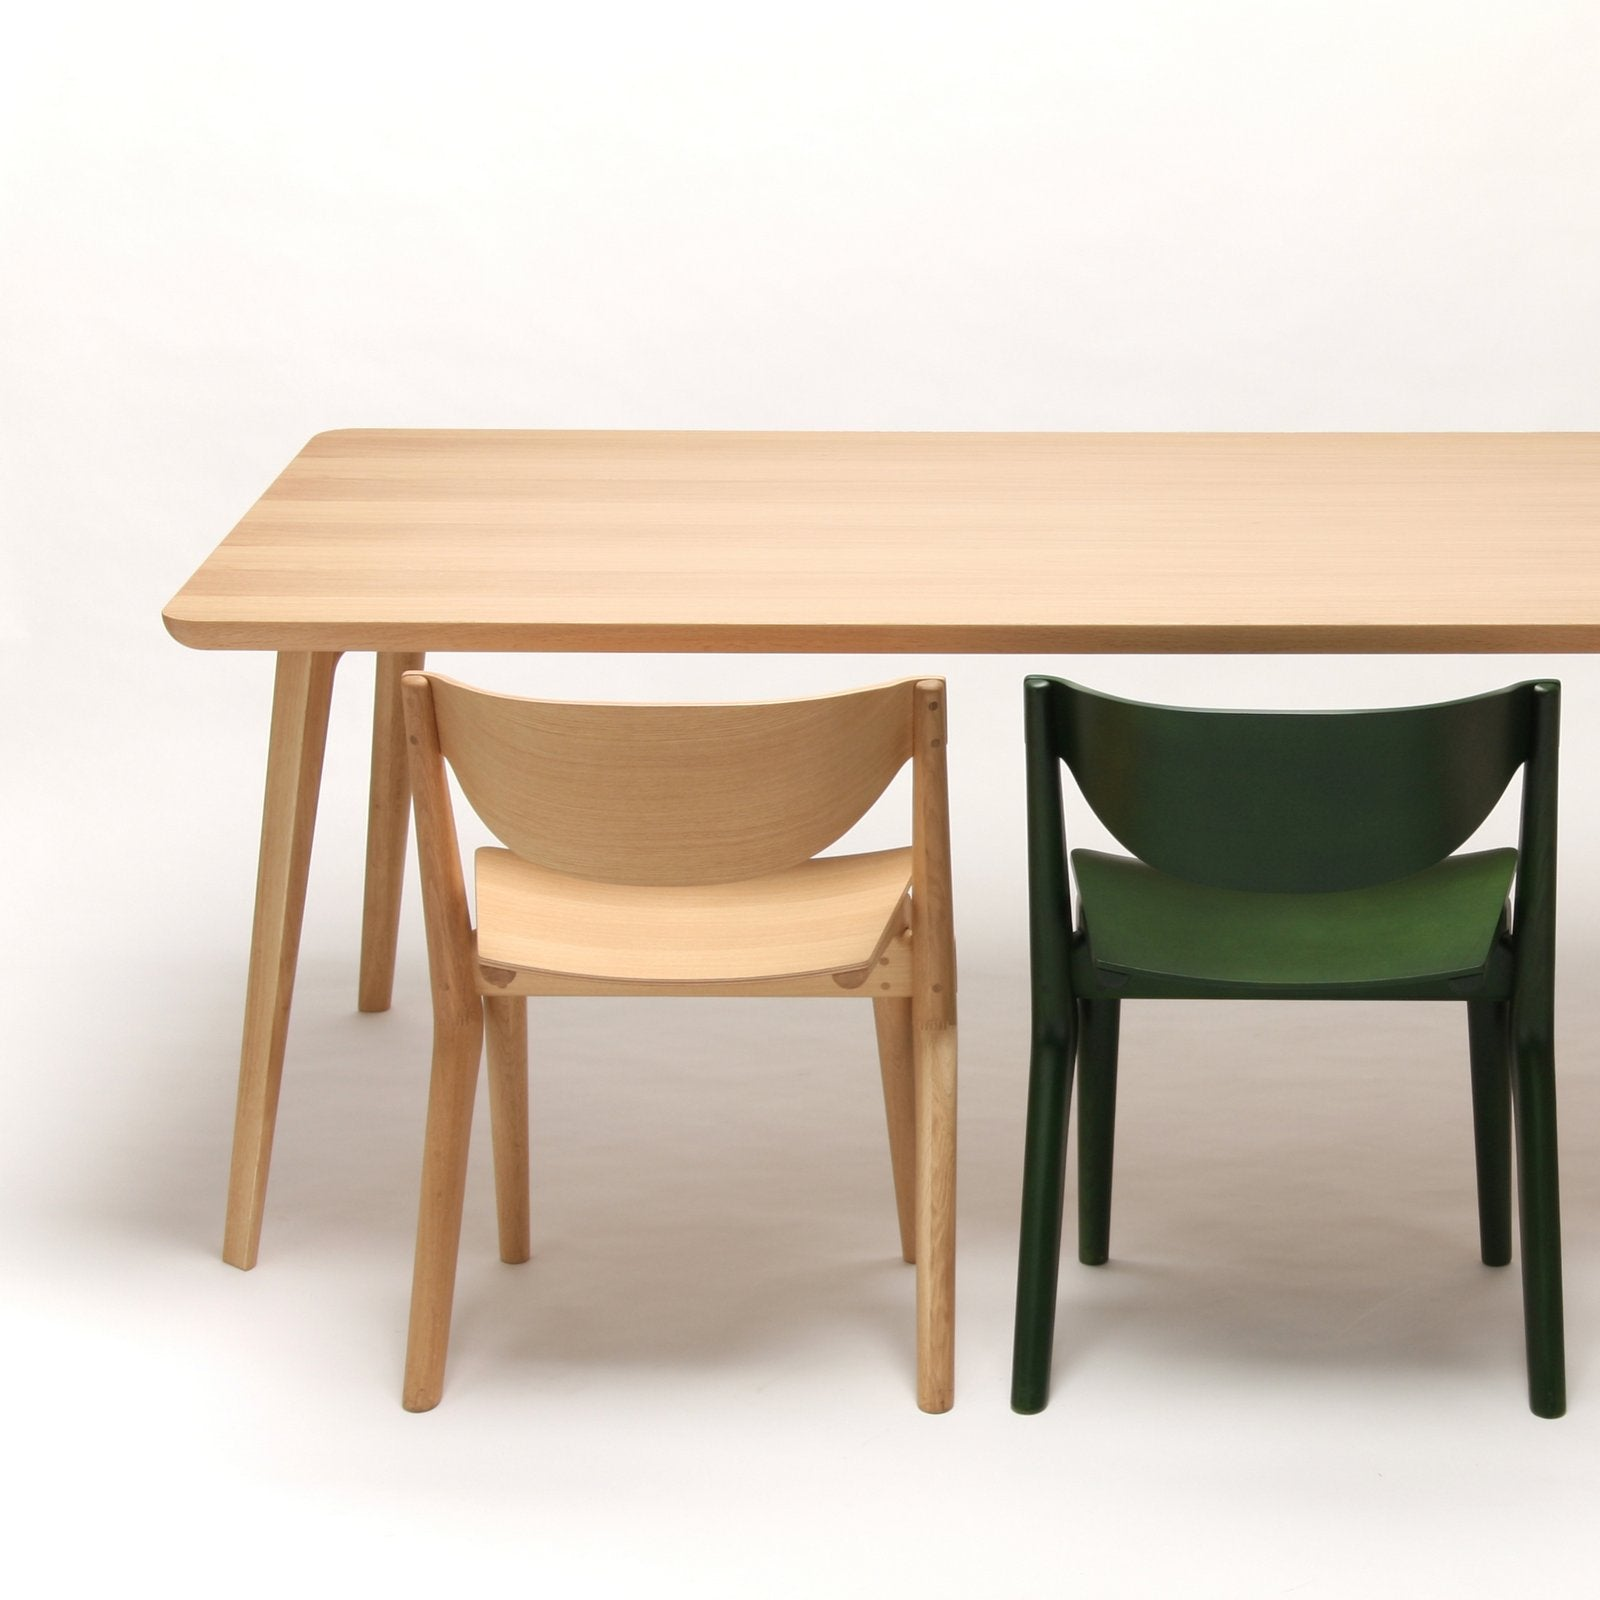 Karimoku New Standard - SCOUT TABLE 240 - Dining Table